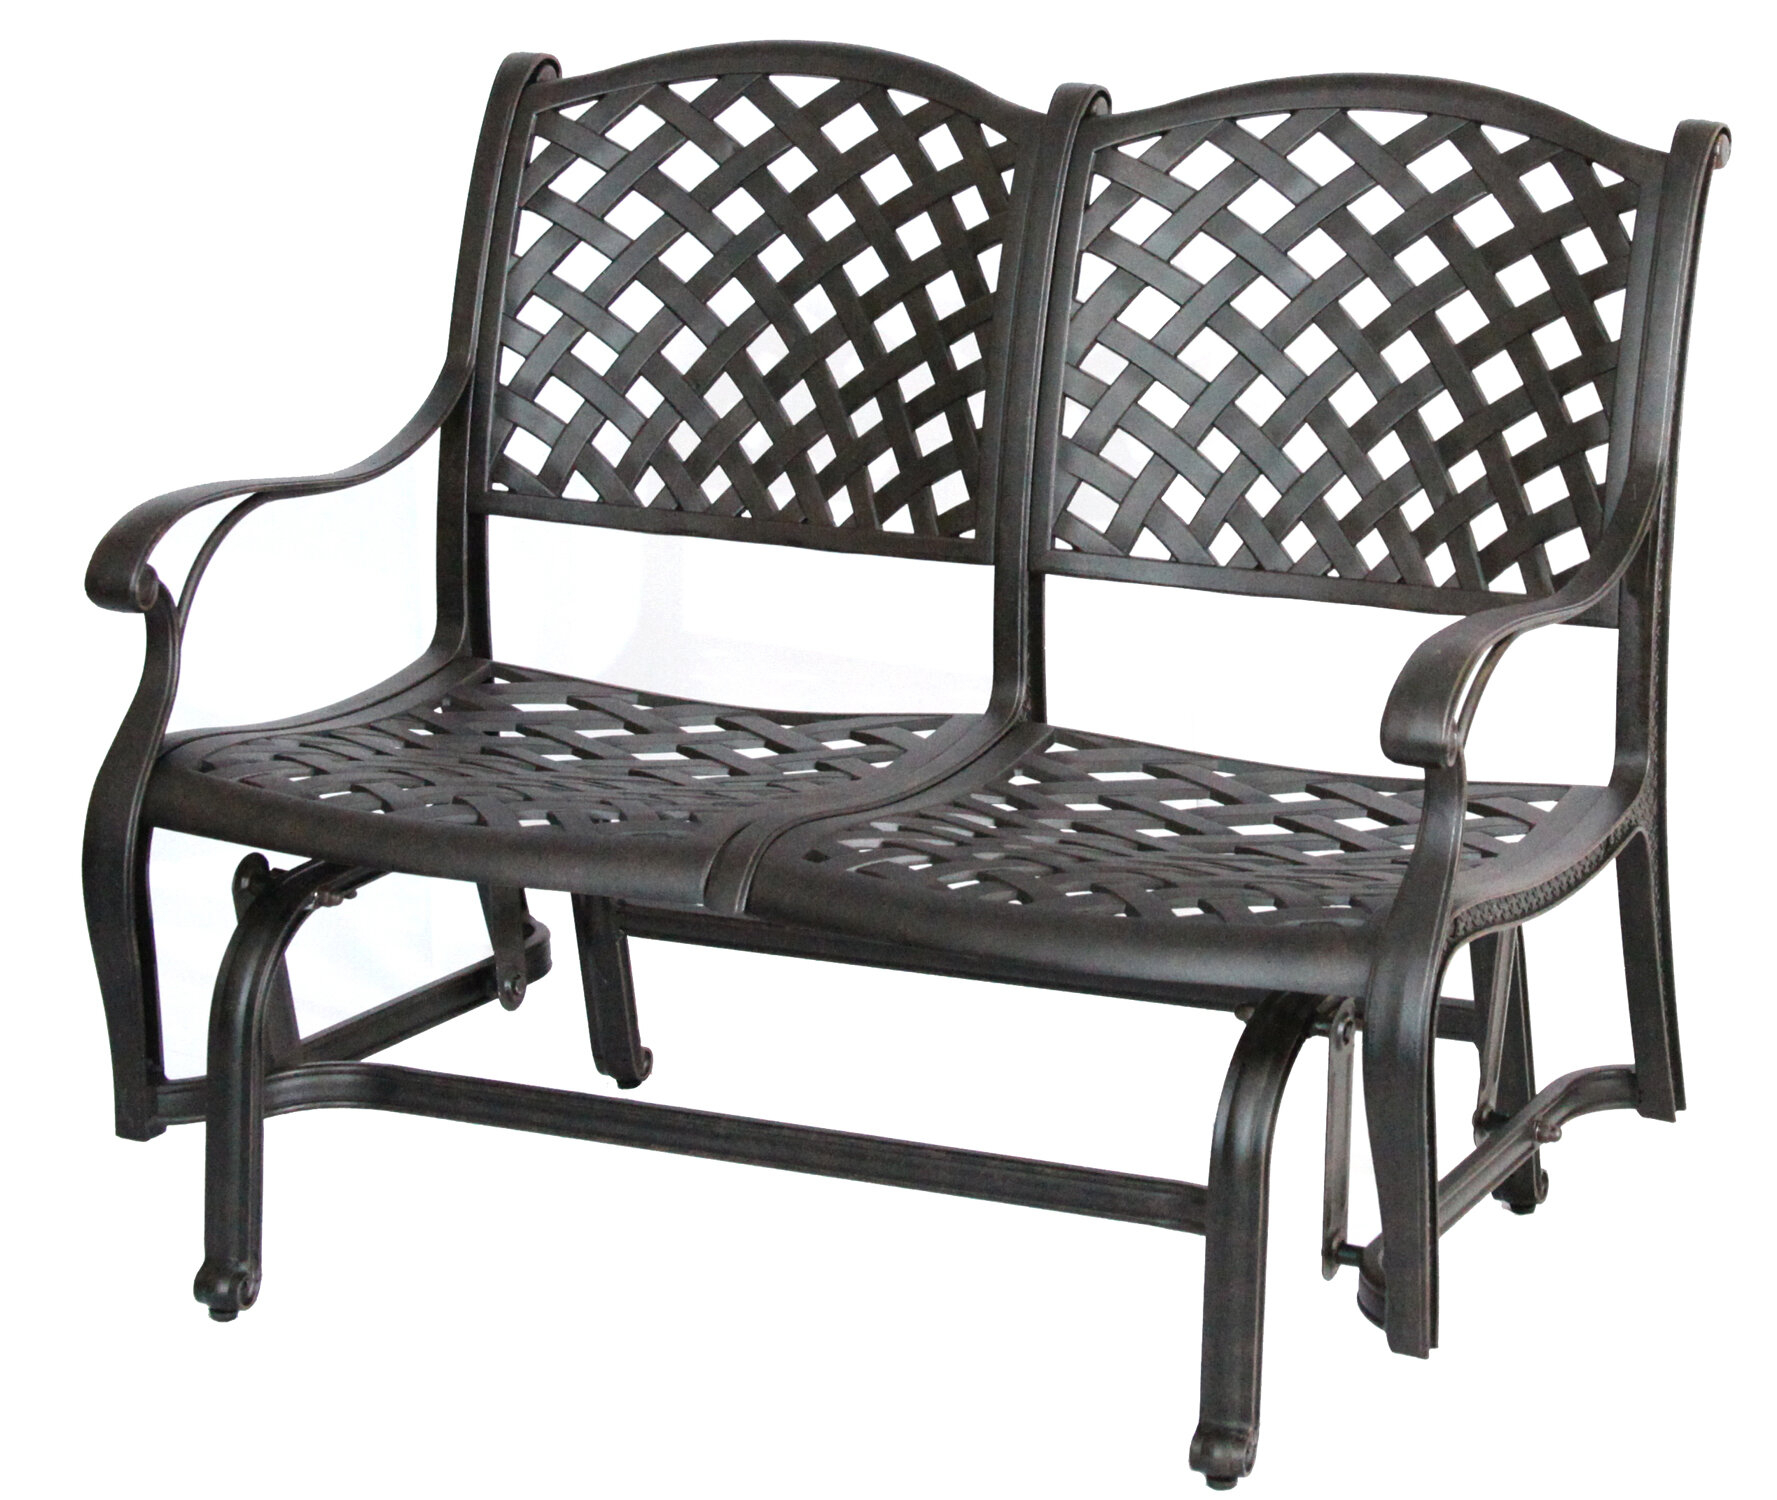 Lincolnville Aluminum Glider Bench With Cushion Pertaining To Glider Benches With Cushion (View 15 of 25)